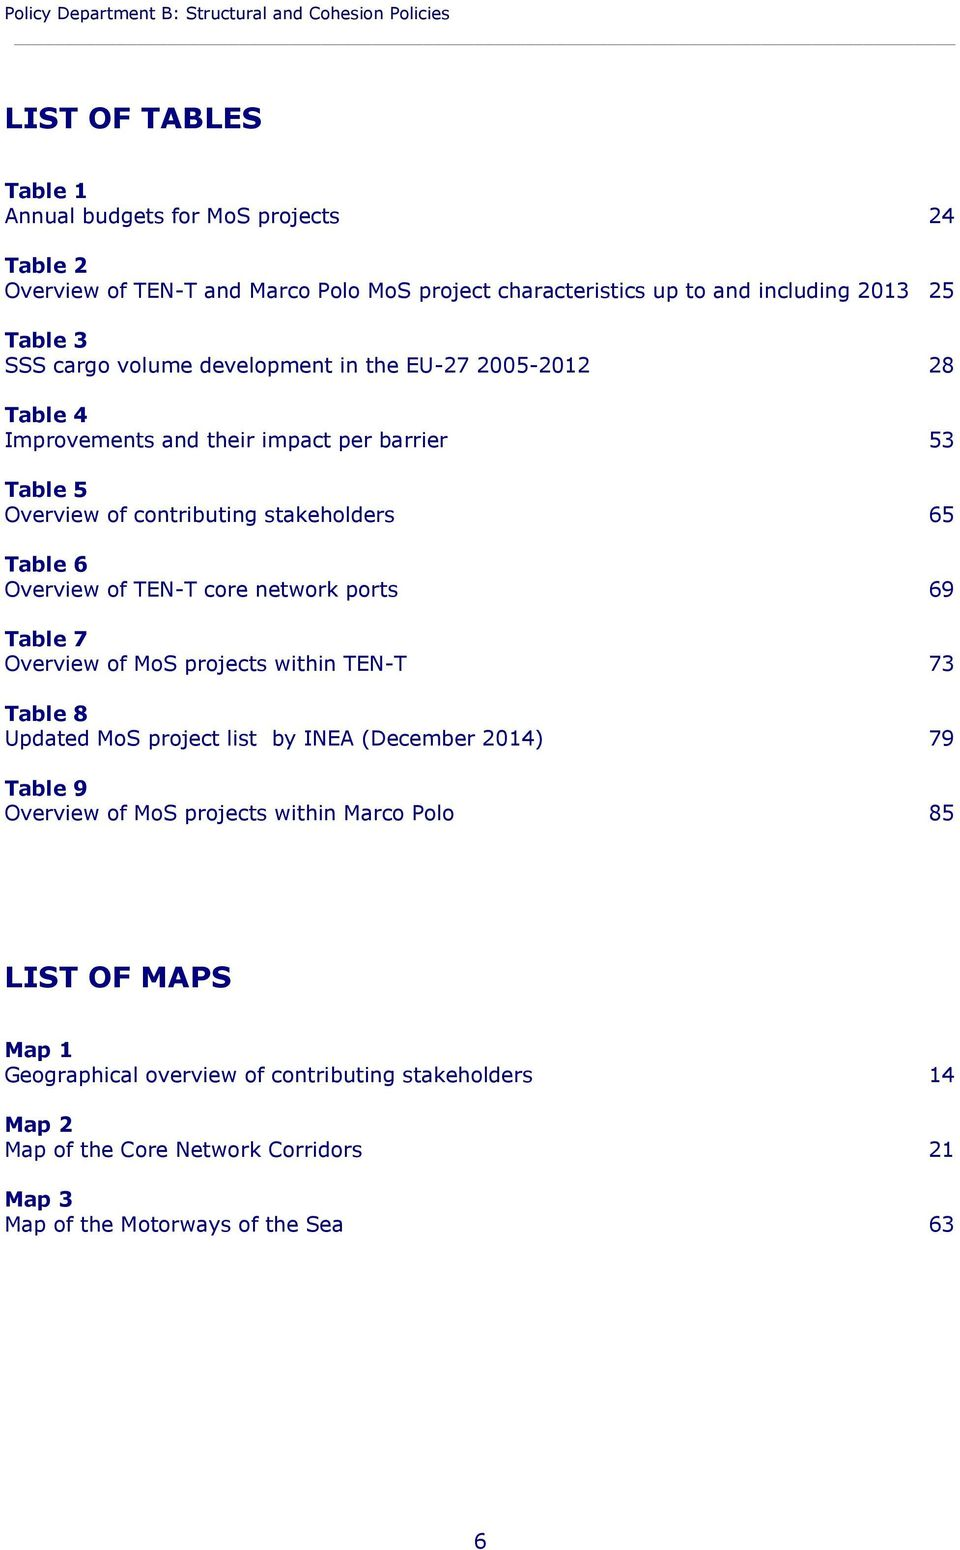 stakeholders 65 Table 6 Overview of core network ports 69 Table 7 Overview of MoS projects within 73 Table 8 Updated MoS project list by INEA (December 2014) 79 Table 9 Overview